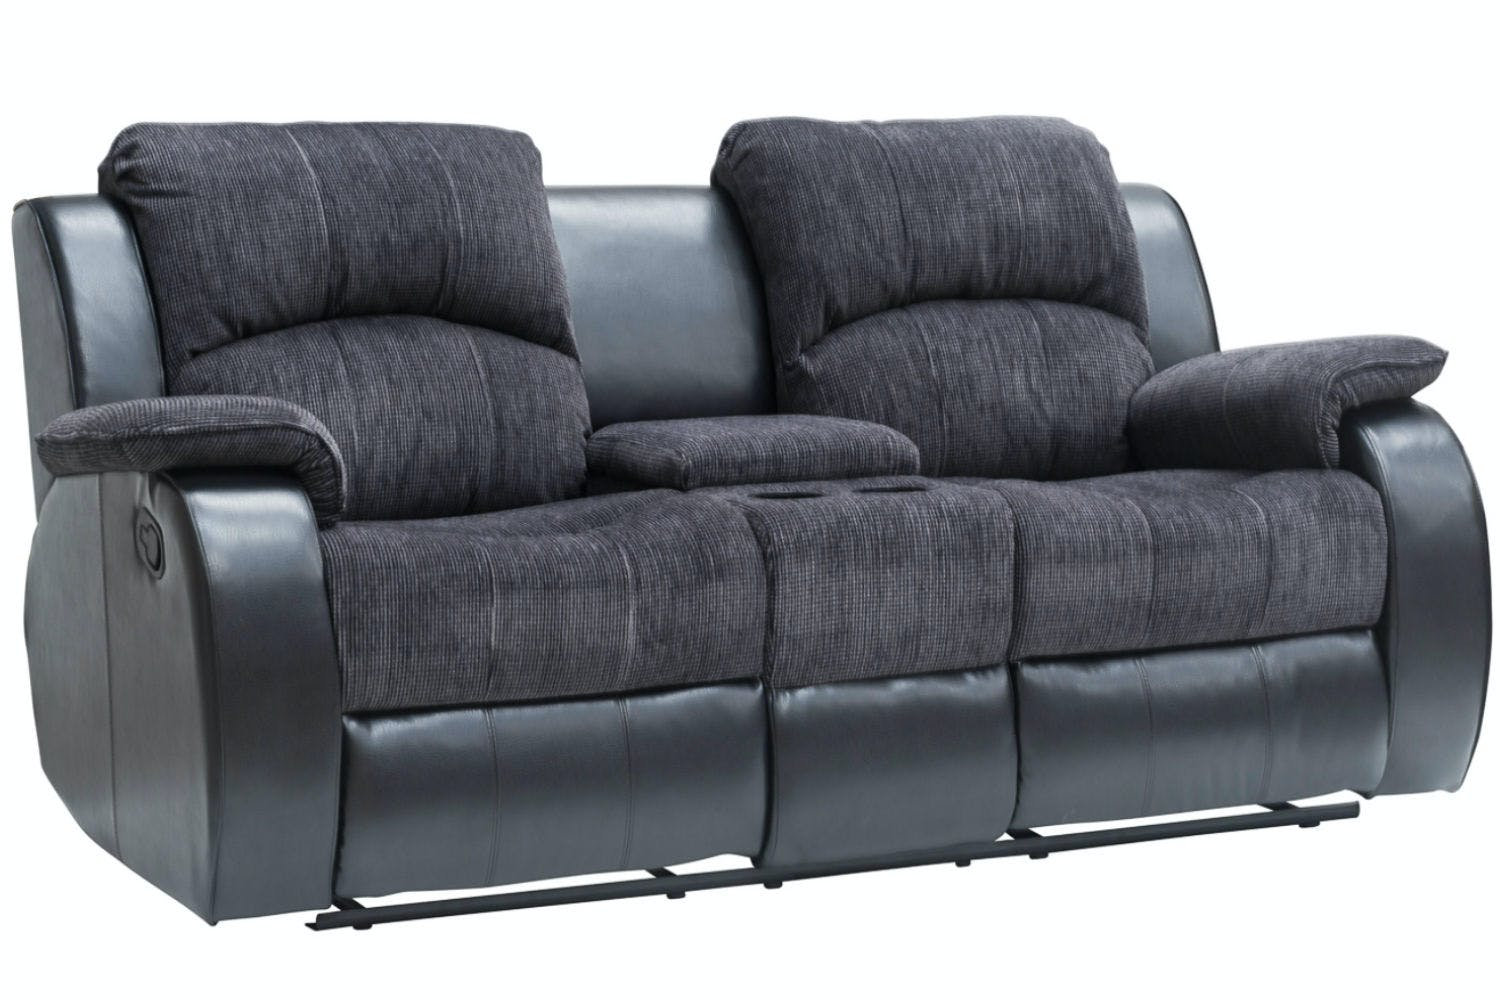 Sofas recliner anton reclining leather 3 seater sofa next for Recliner sofa